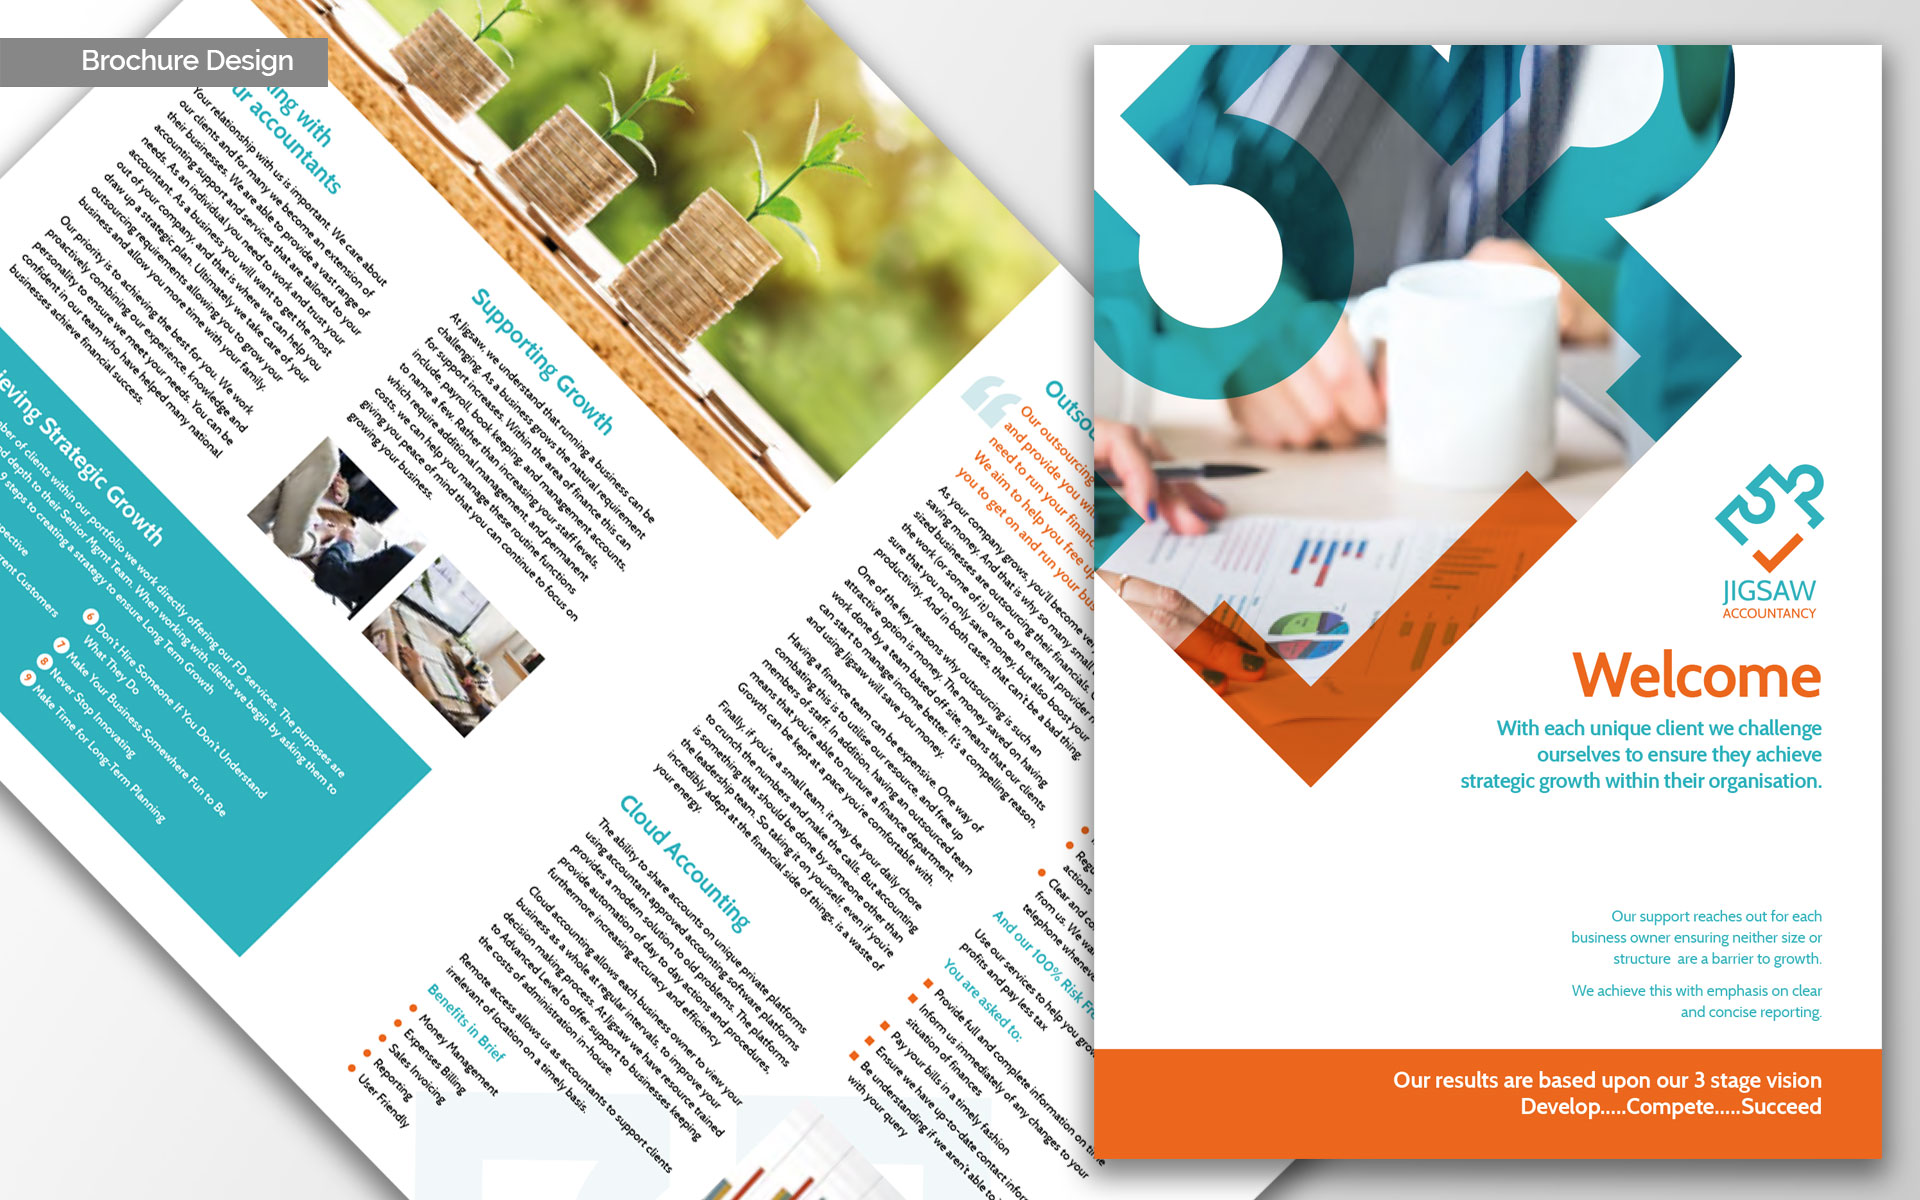 jigsaw brochure design